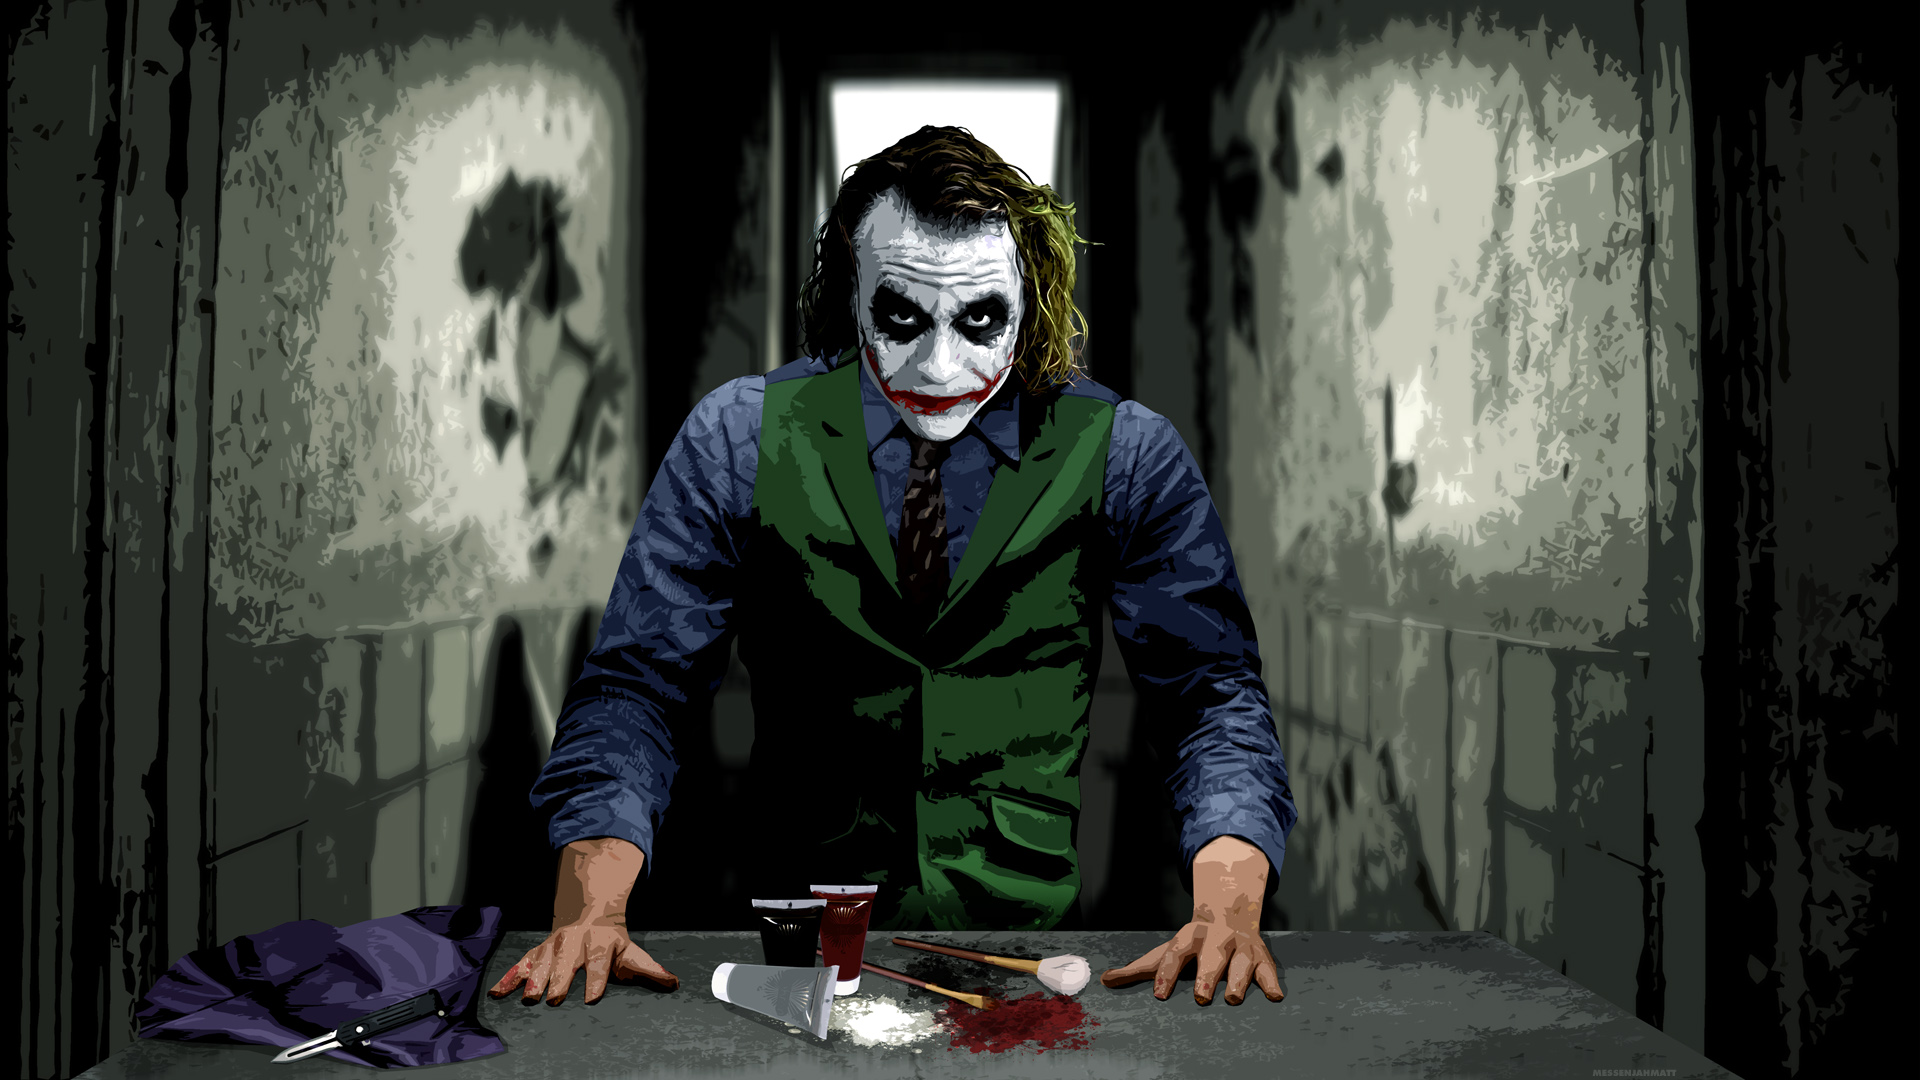 Download Joker HD Wallpapers